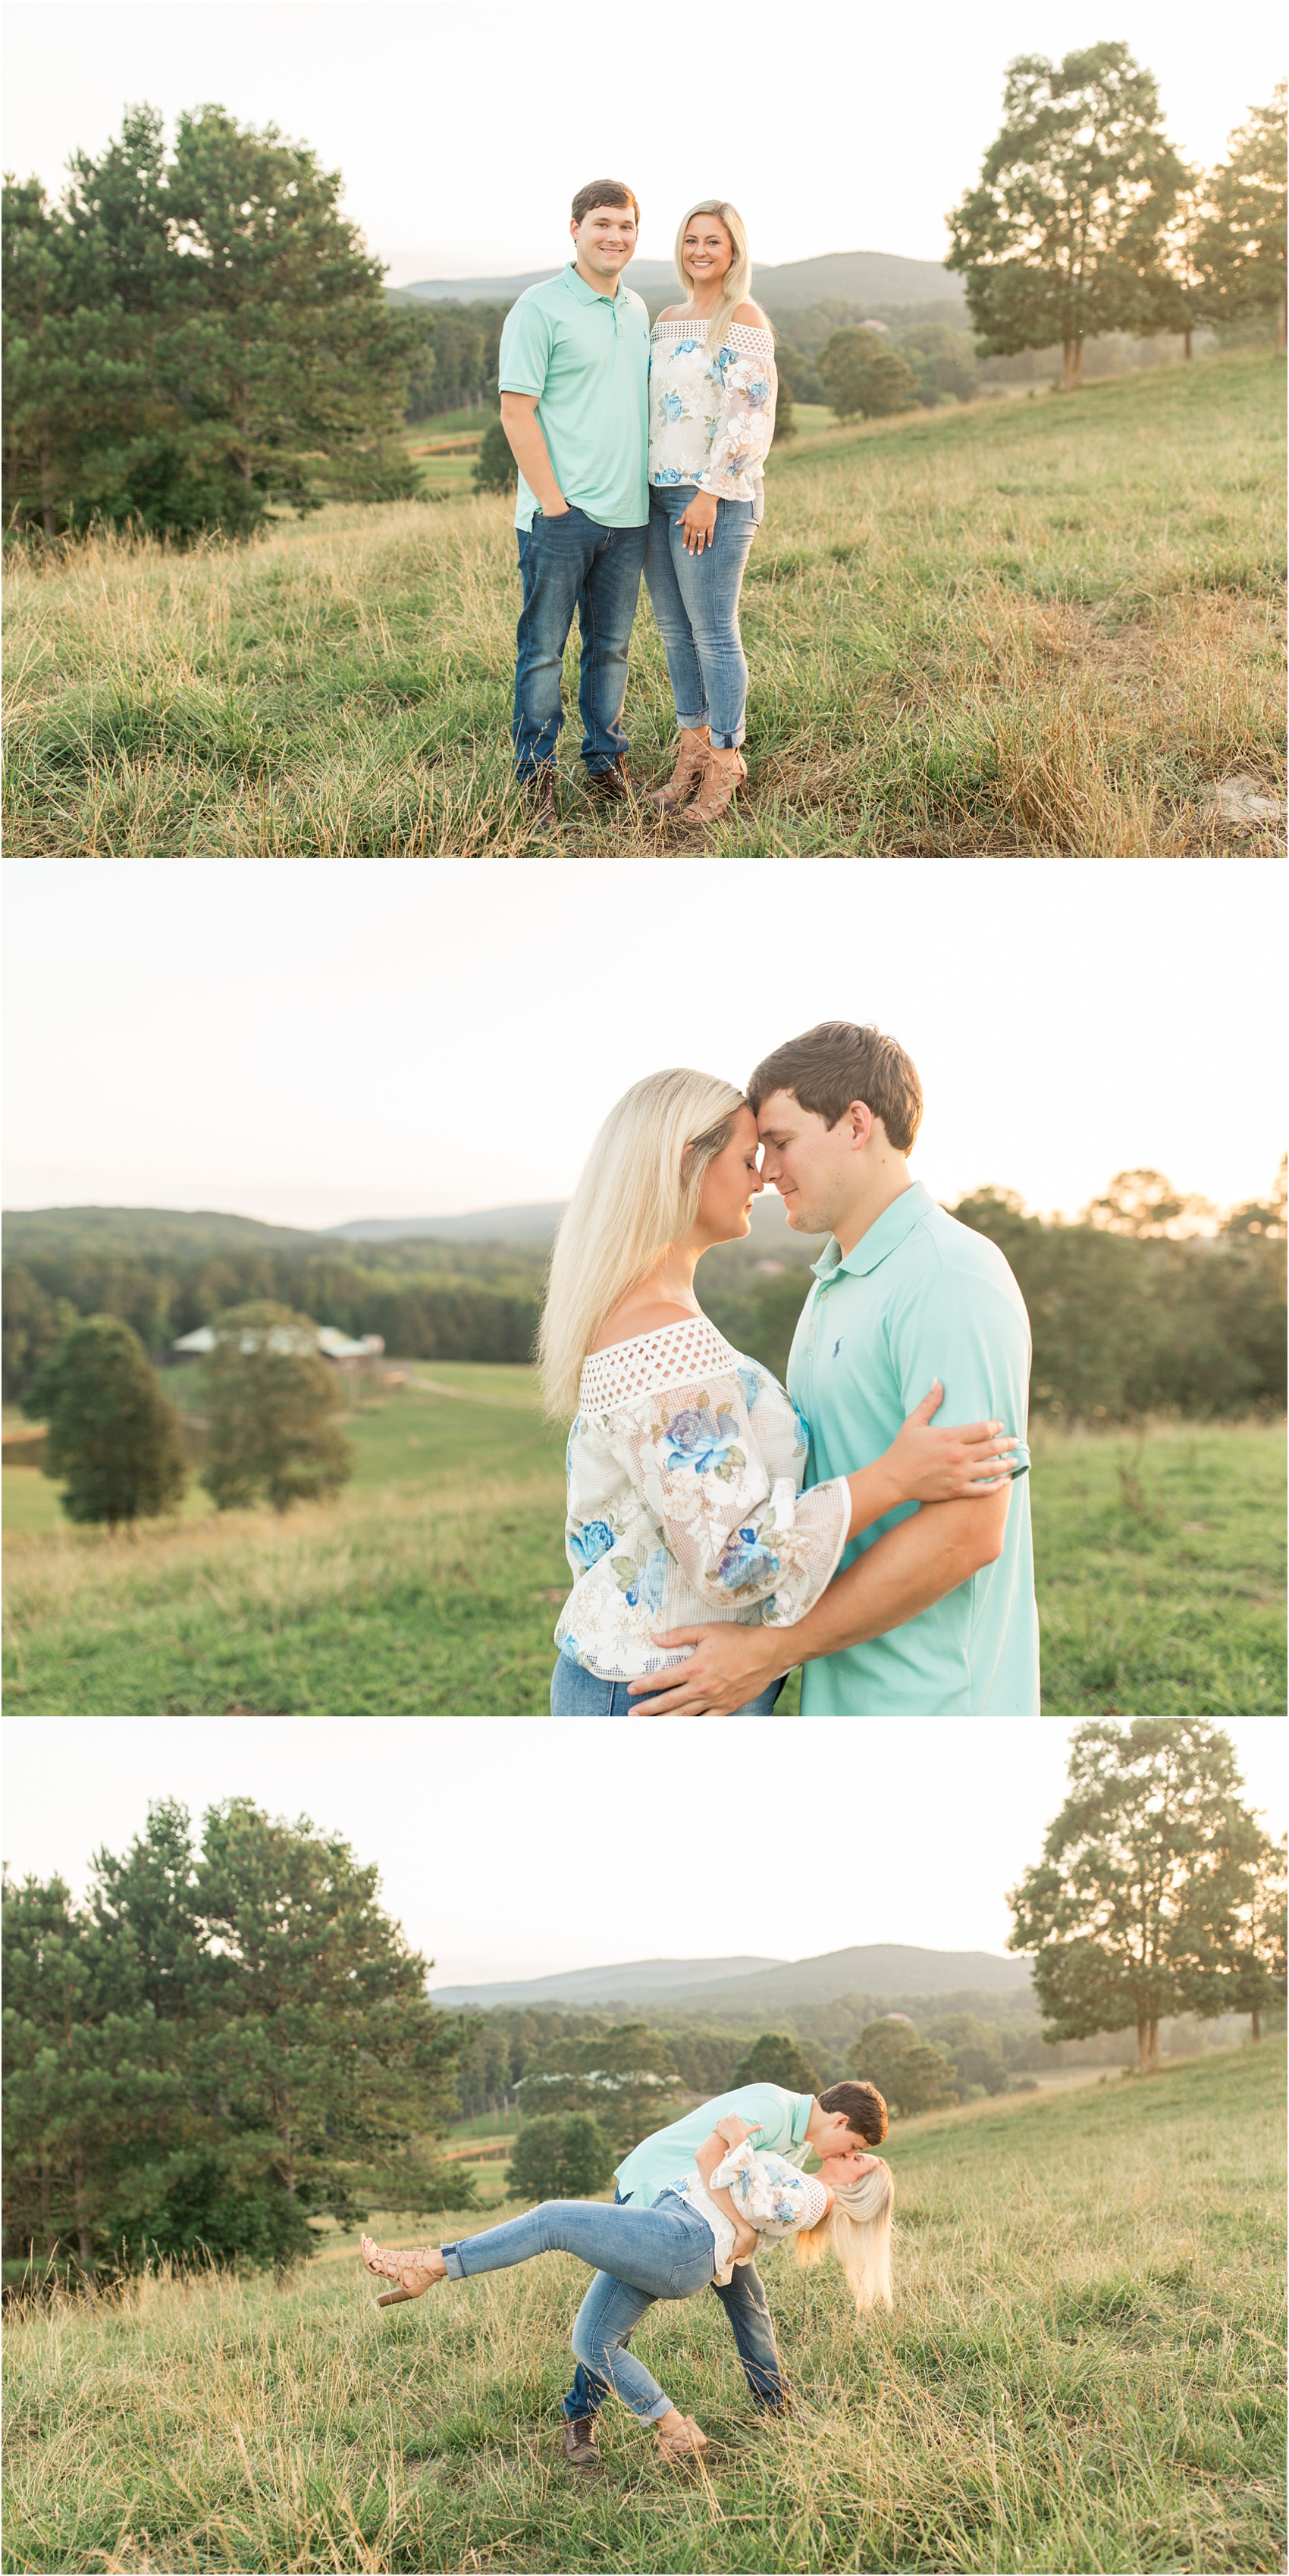 Savannah Eve Photography LLC- Settlemyer-Heyward Engagements- Blog-18.jpg